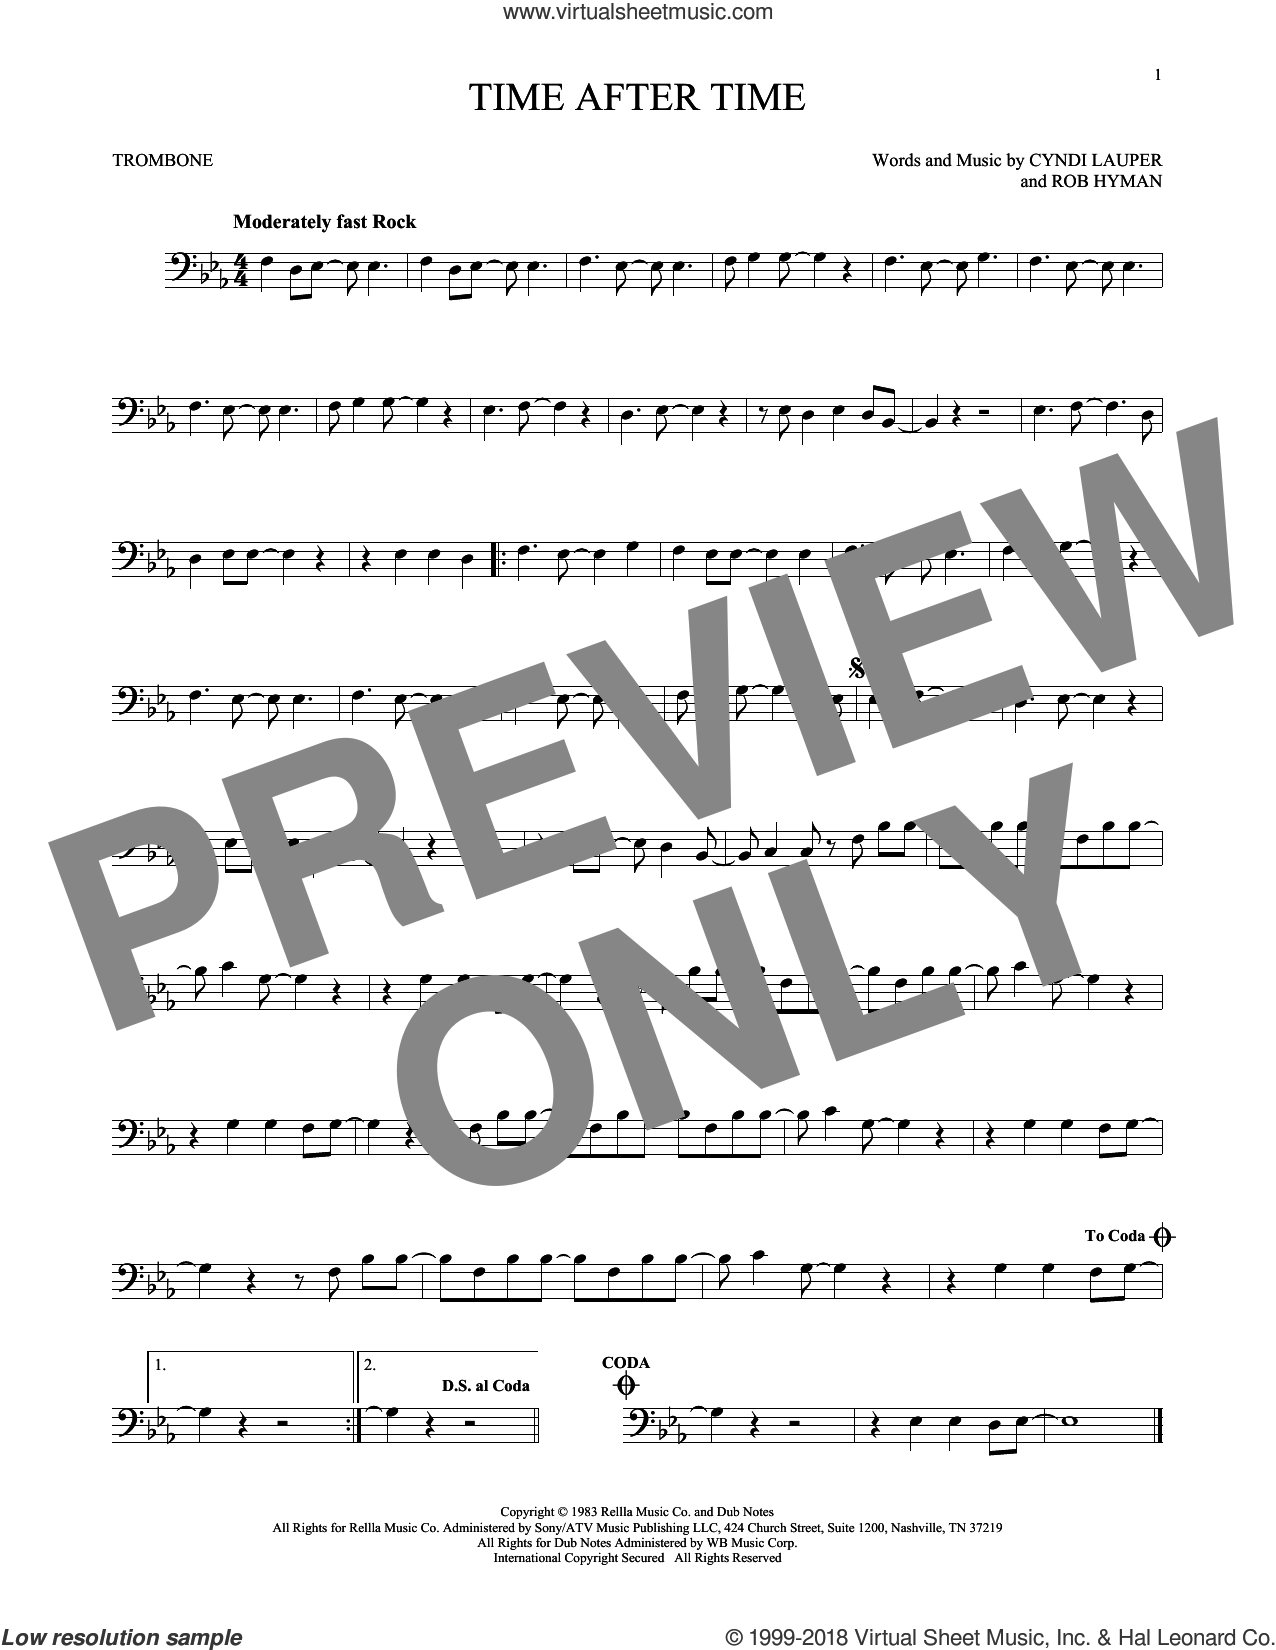 Time After Time sheet music for trombone solo by Rob Hyman